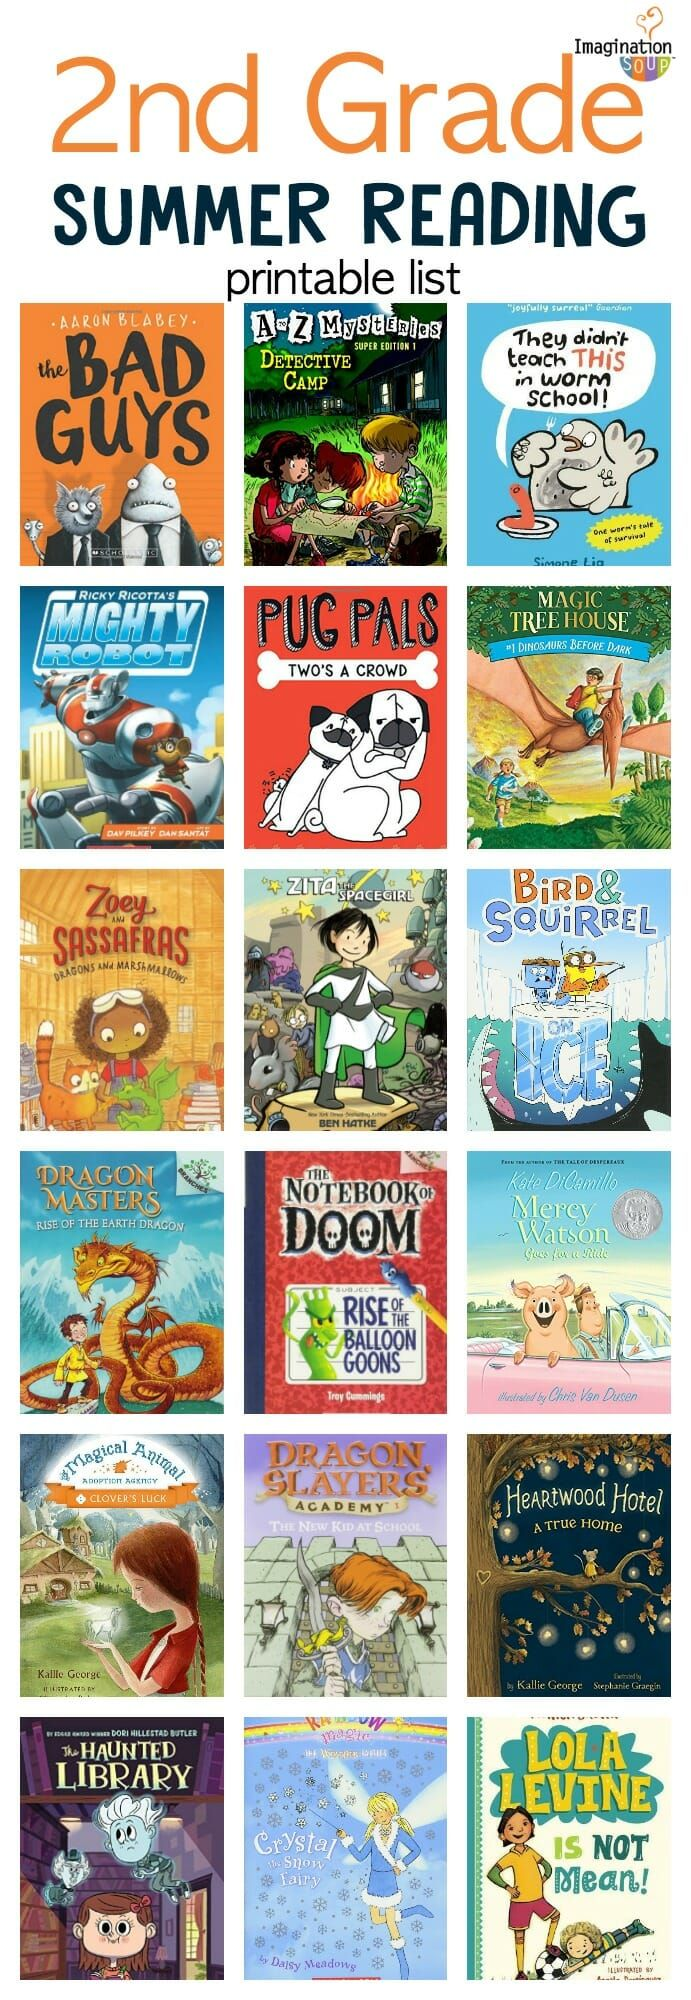 Second Grade Summer Reading List with Printable Book List